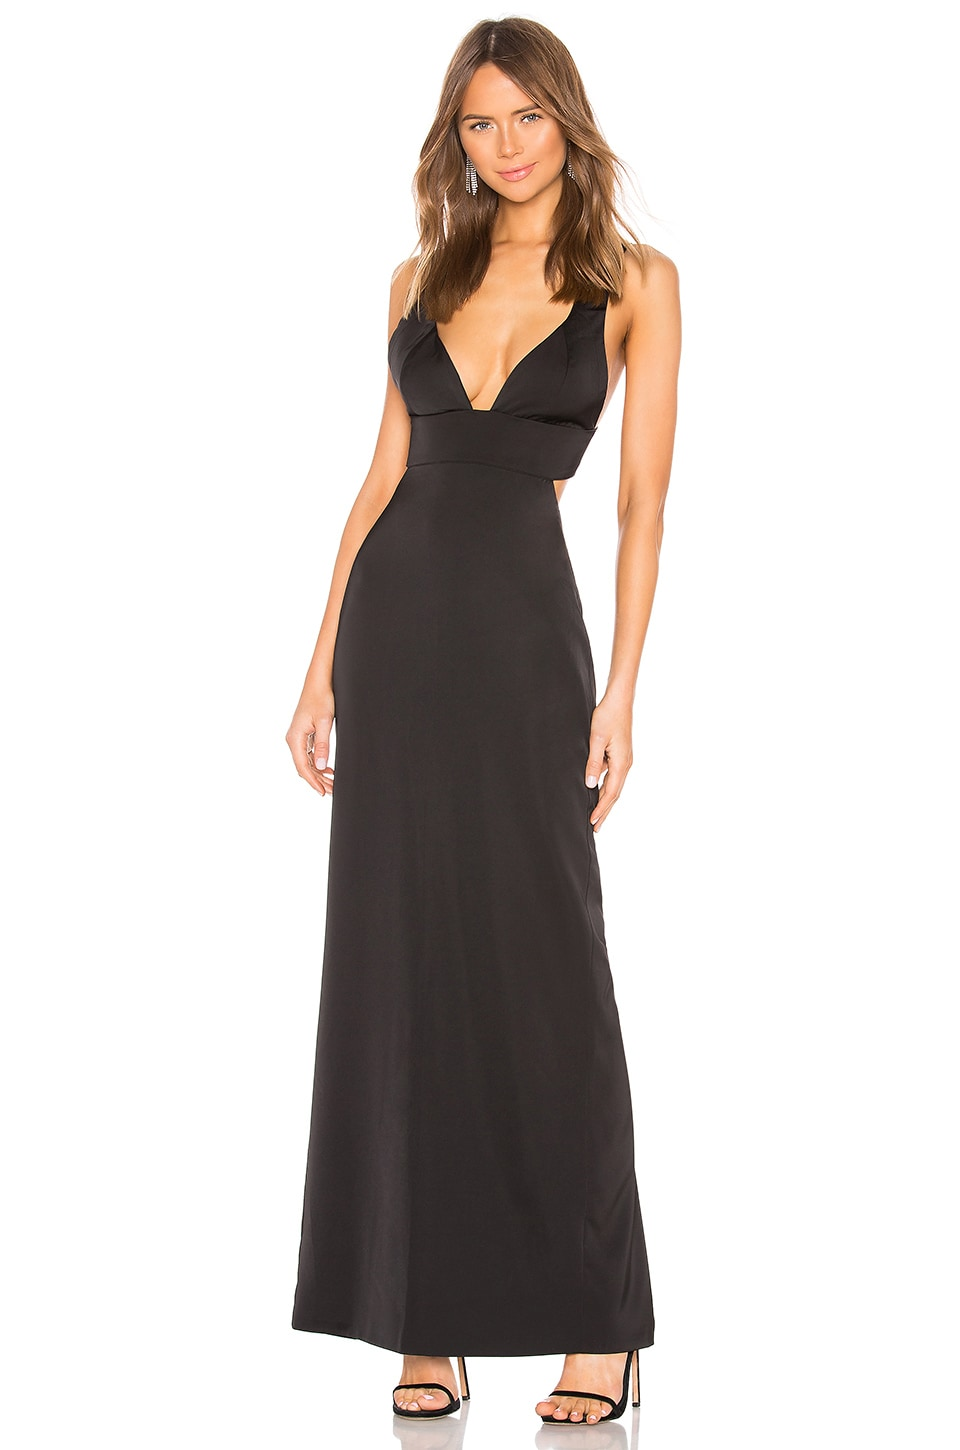 NBD Bel Air Gown in Black